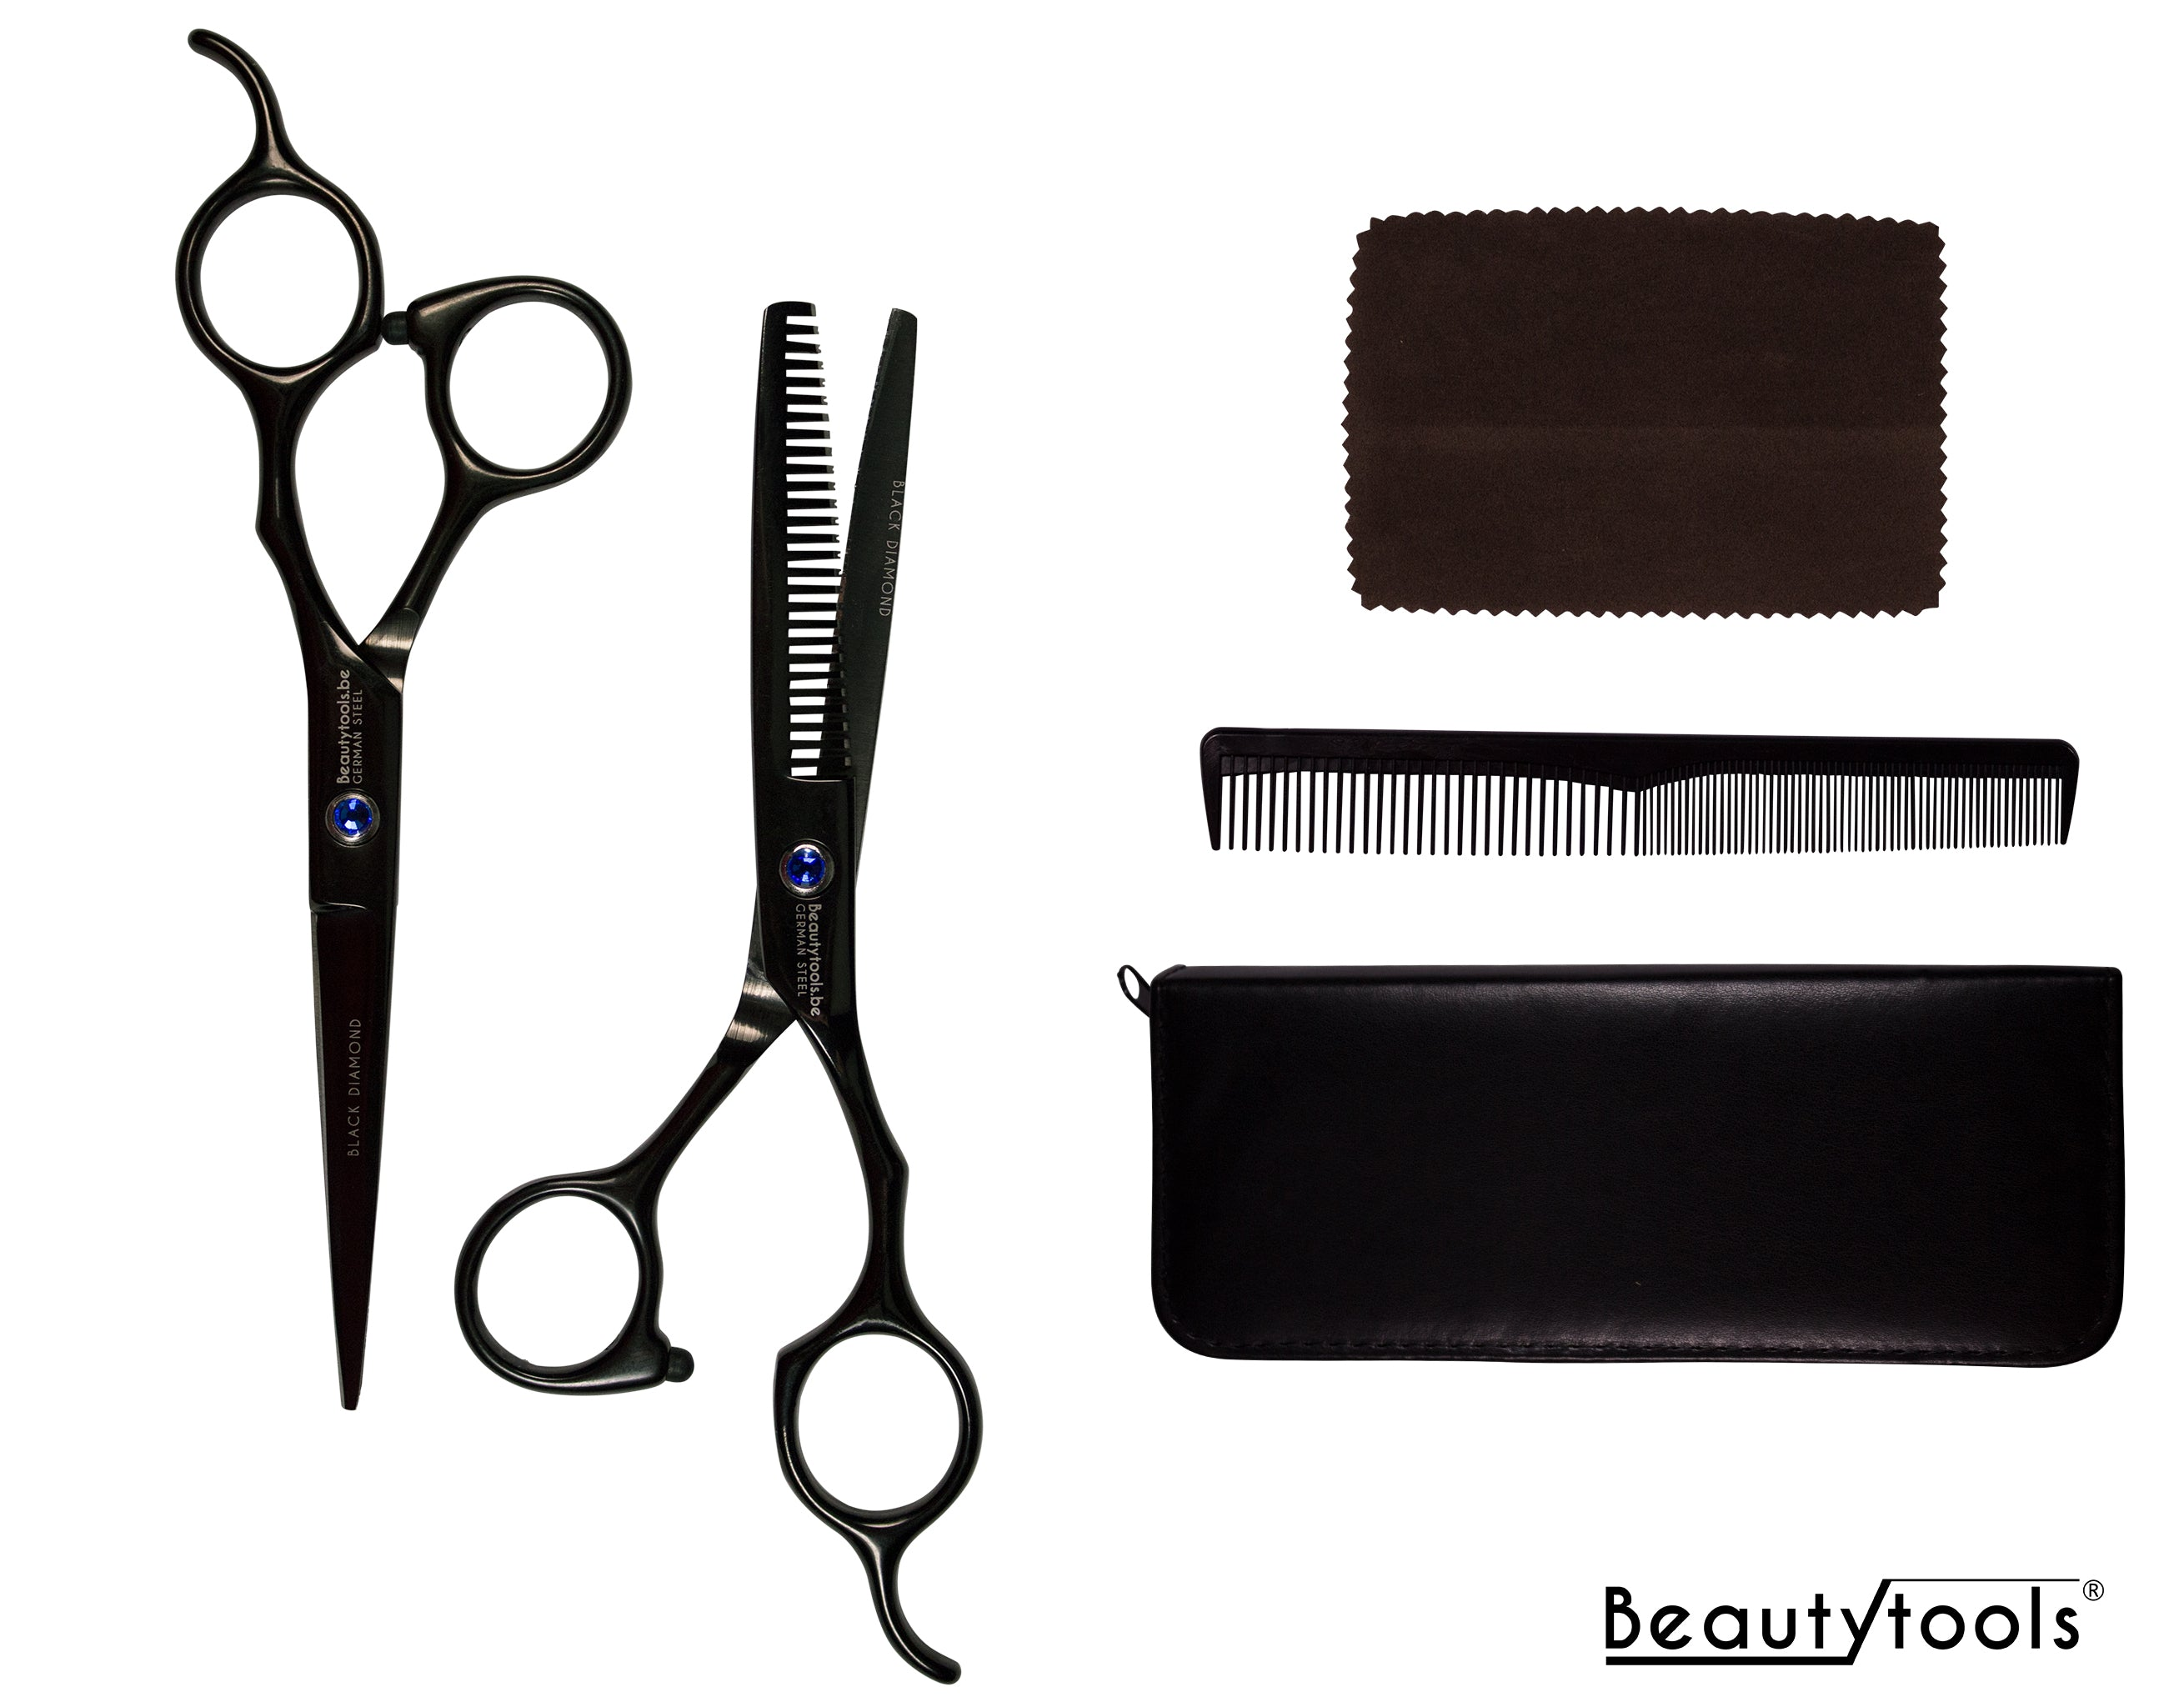 PROMO! Kappersscharen Set BlackDiamond 6 Inch | BeautyTools Online